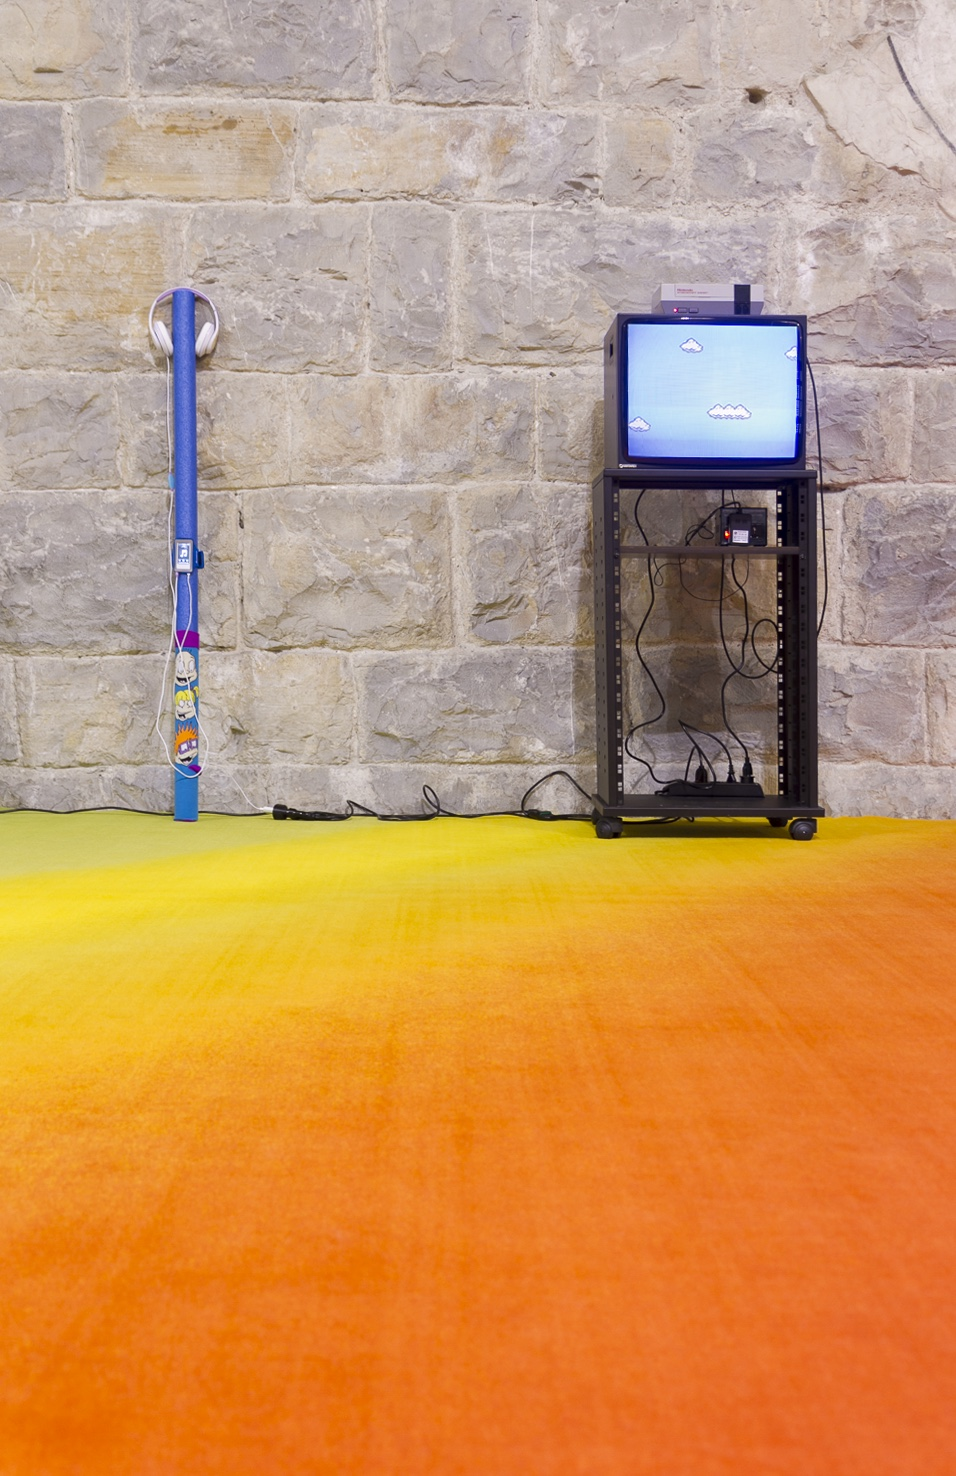 Cory Arcangel, This Is All So Crazy, Everybody Seems So Famous, Gamec, 2015.